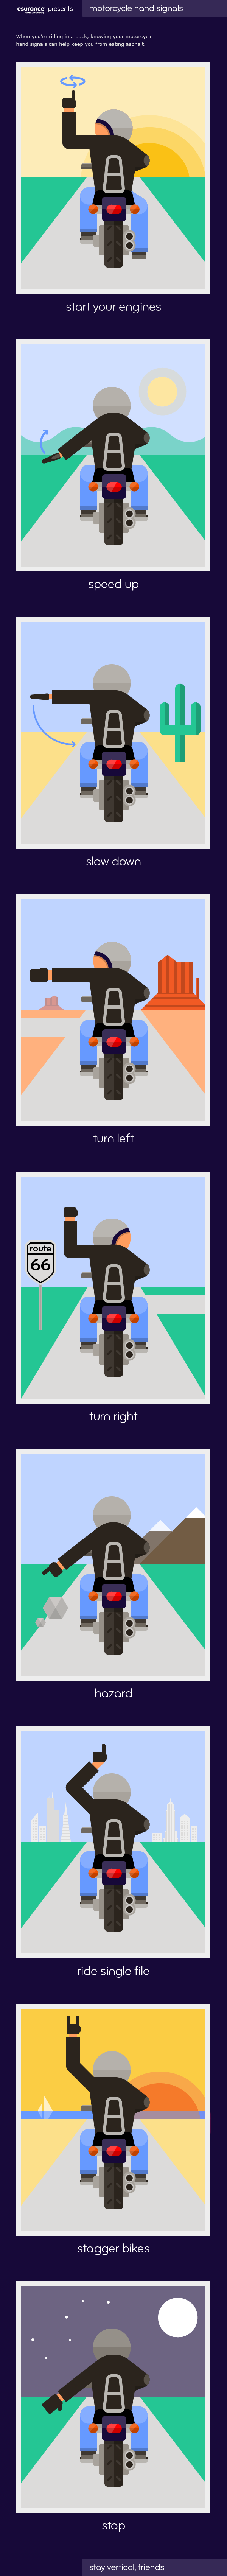 Motorcycle Riders Use A Variety Of Signals To Indicate Everything From Slow Down To Watch Out Hazard Ahead Check Out The Motocikl Horoshie Idei Velosiped